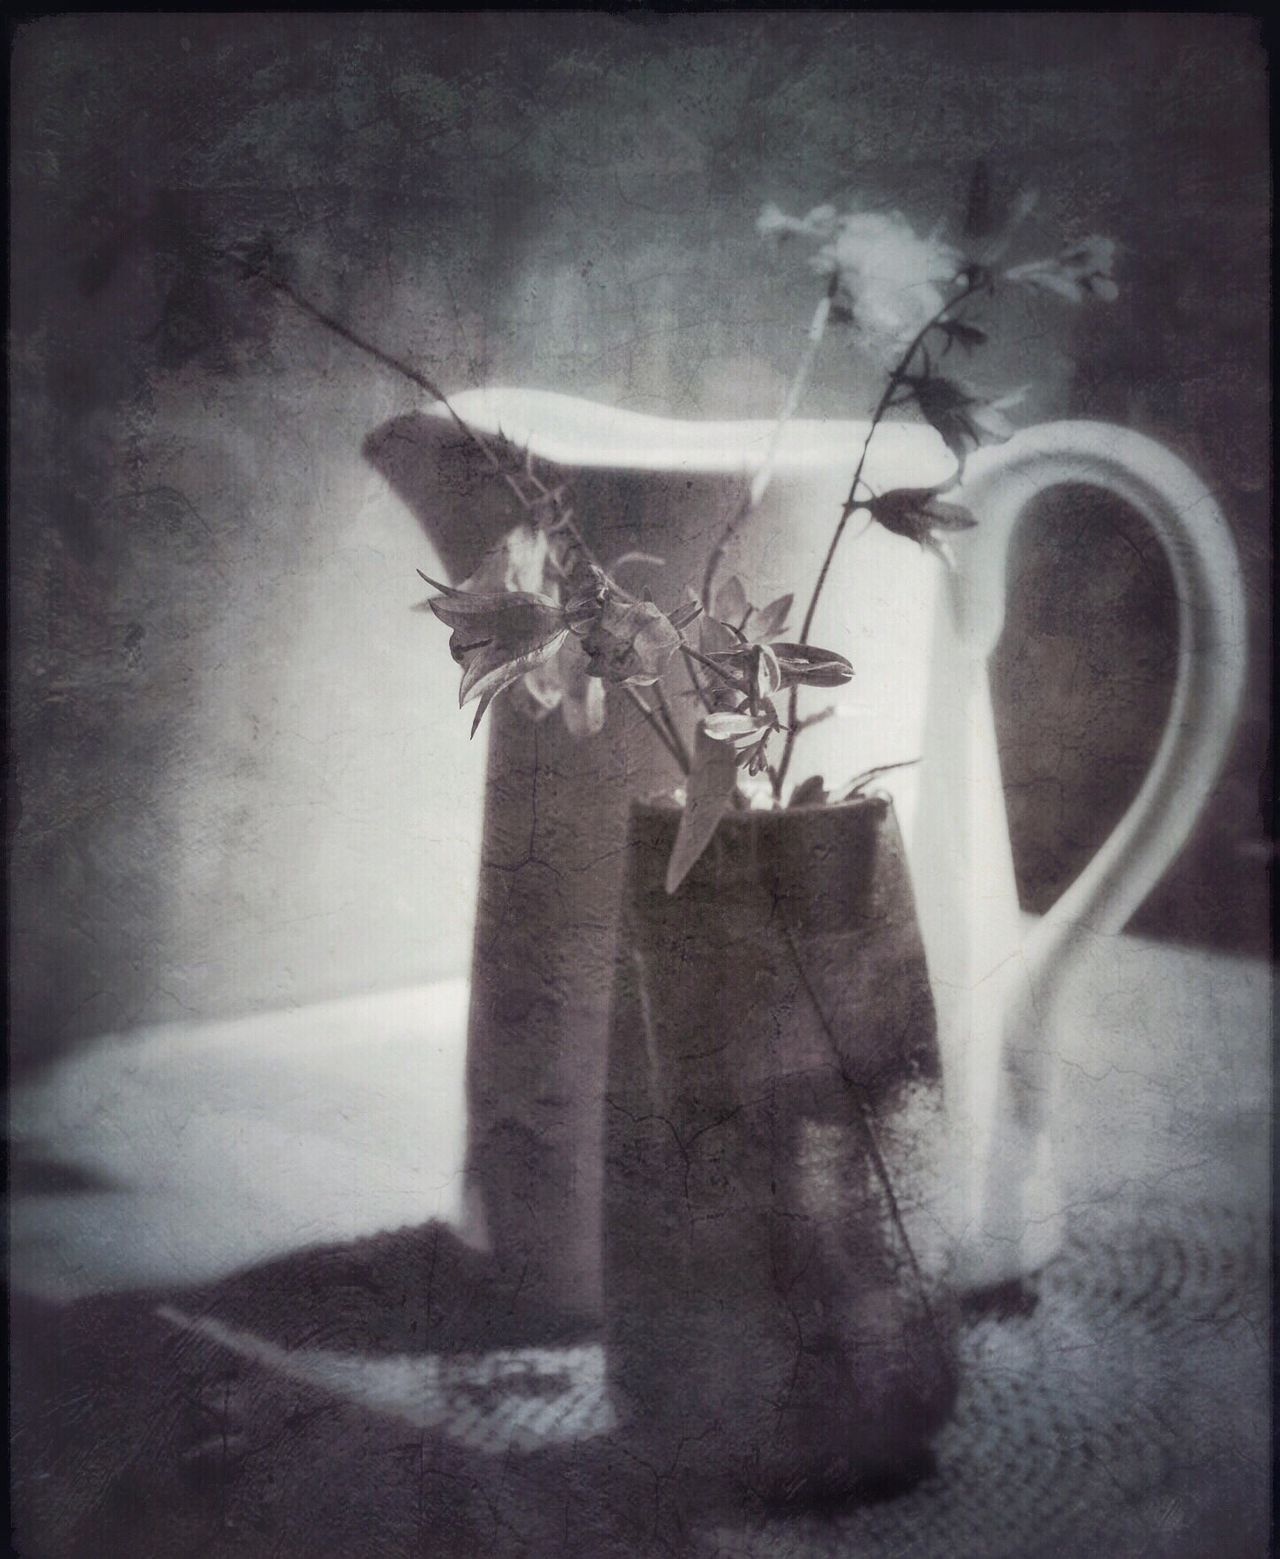 Achromatic Monochrome Greyscale Blackandwhite Light And Shadow Still Life Vintage Flowers Floral Melancholic Landscapes Moody Shadows